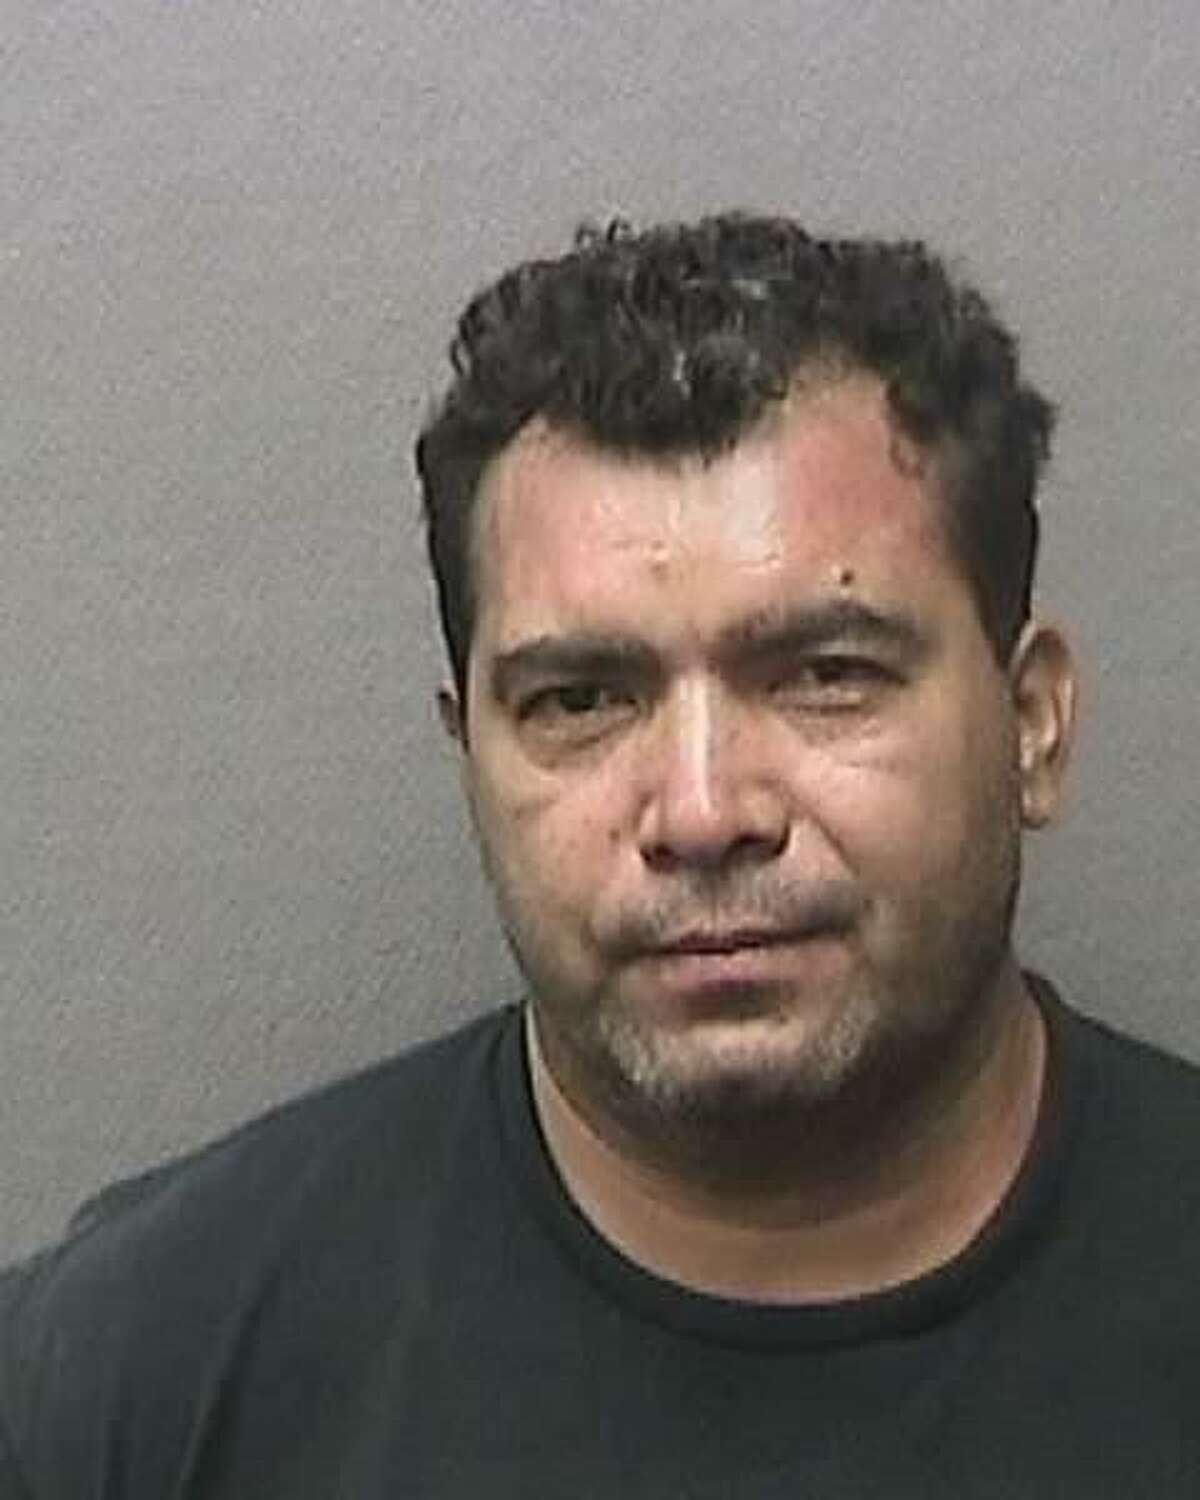 Jose Mejia is wanted by Houston Crime Stoppers on a charge of DWI 3rd offender.